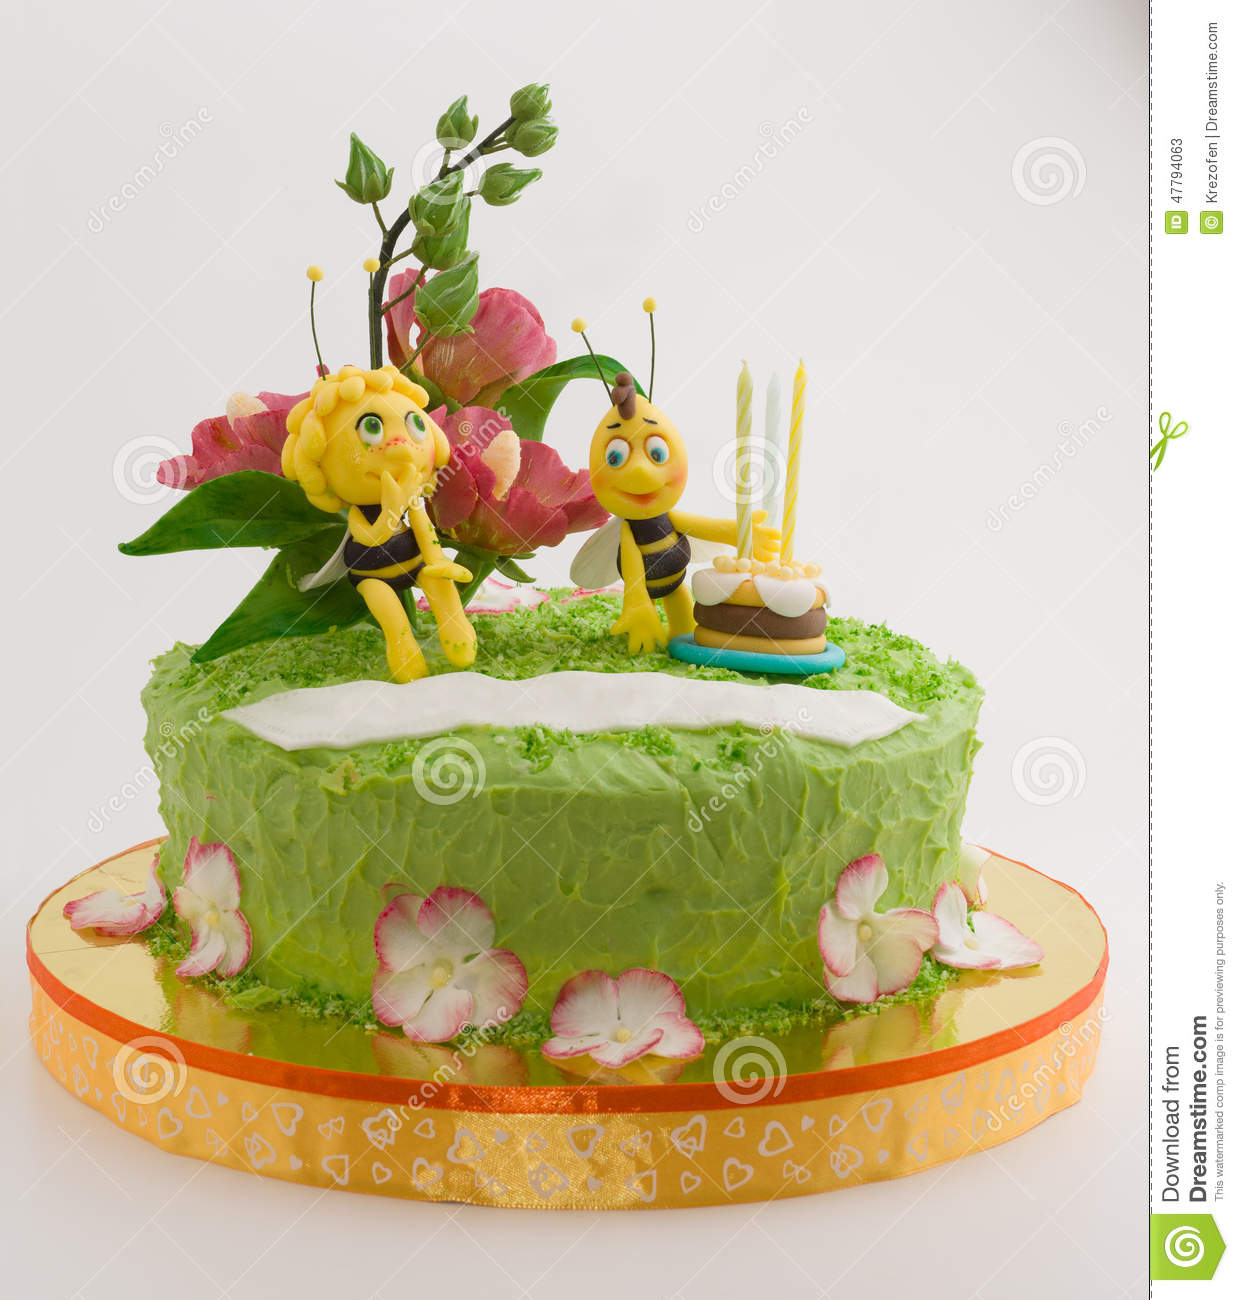 Christmas Fairy Cake Decorating Ideas : Fairy Cake Stock Photo - Image: 47794063